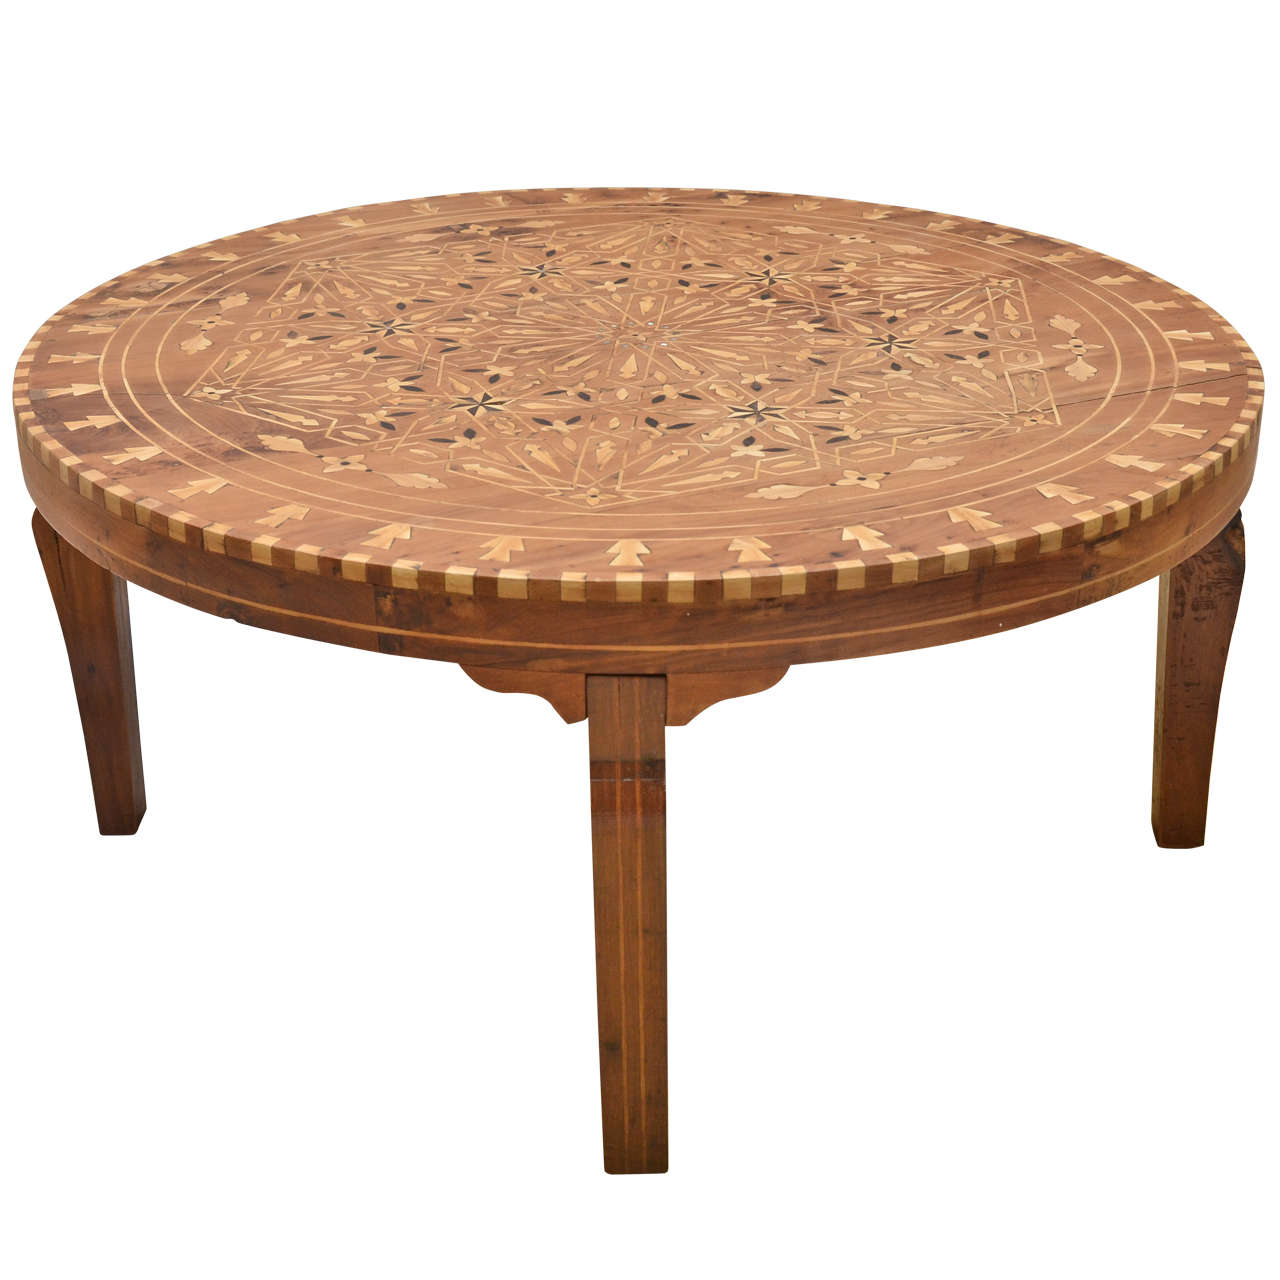 Superb Circular Inlaid Cedar Indian Coffee Table At 1stdibs